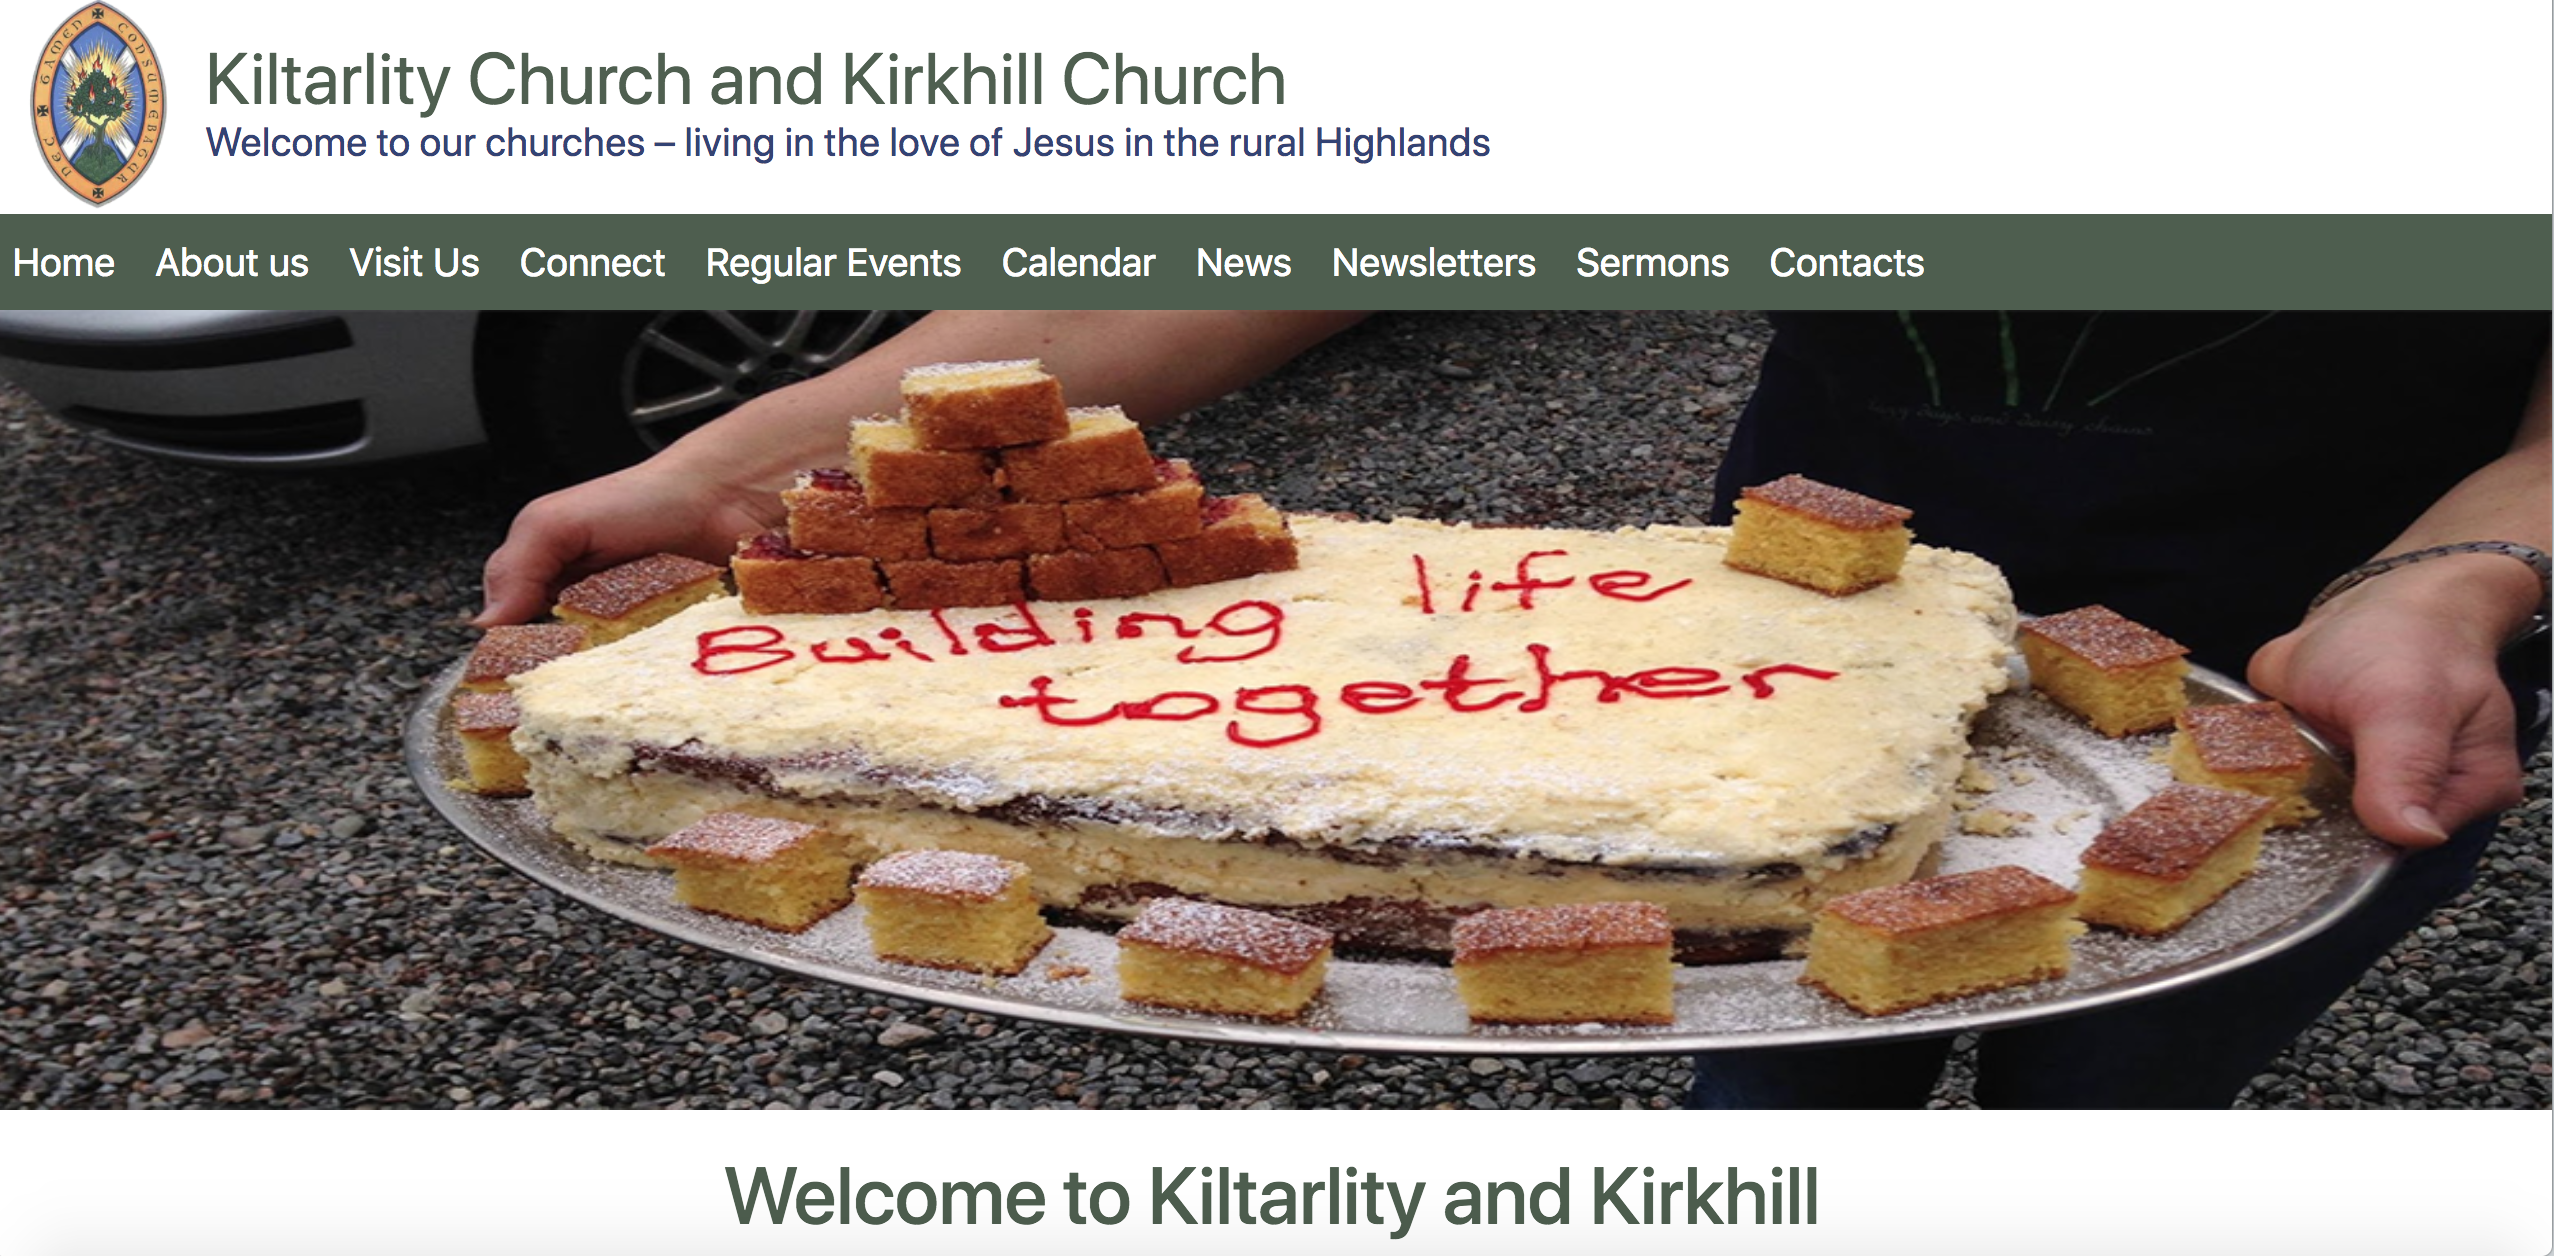 Kiltarlity and Kirkhill Churches